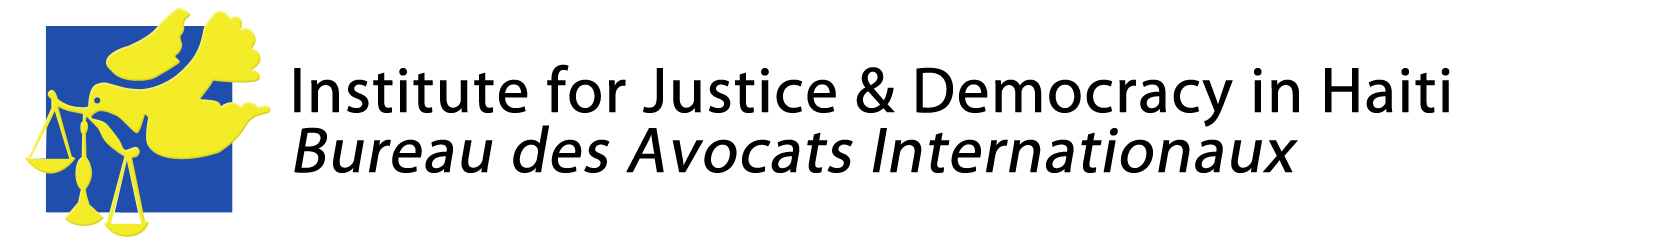 http://content.delivra.com/etapcontent//InstituteforJusticeandDemo/ijdh_french_logo_on_whitehighresolution.jpg